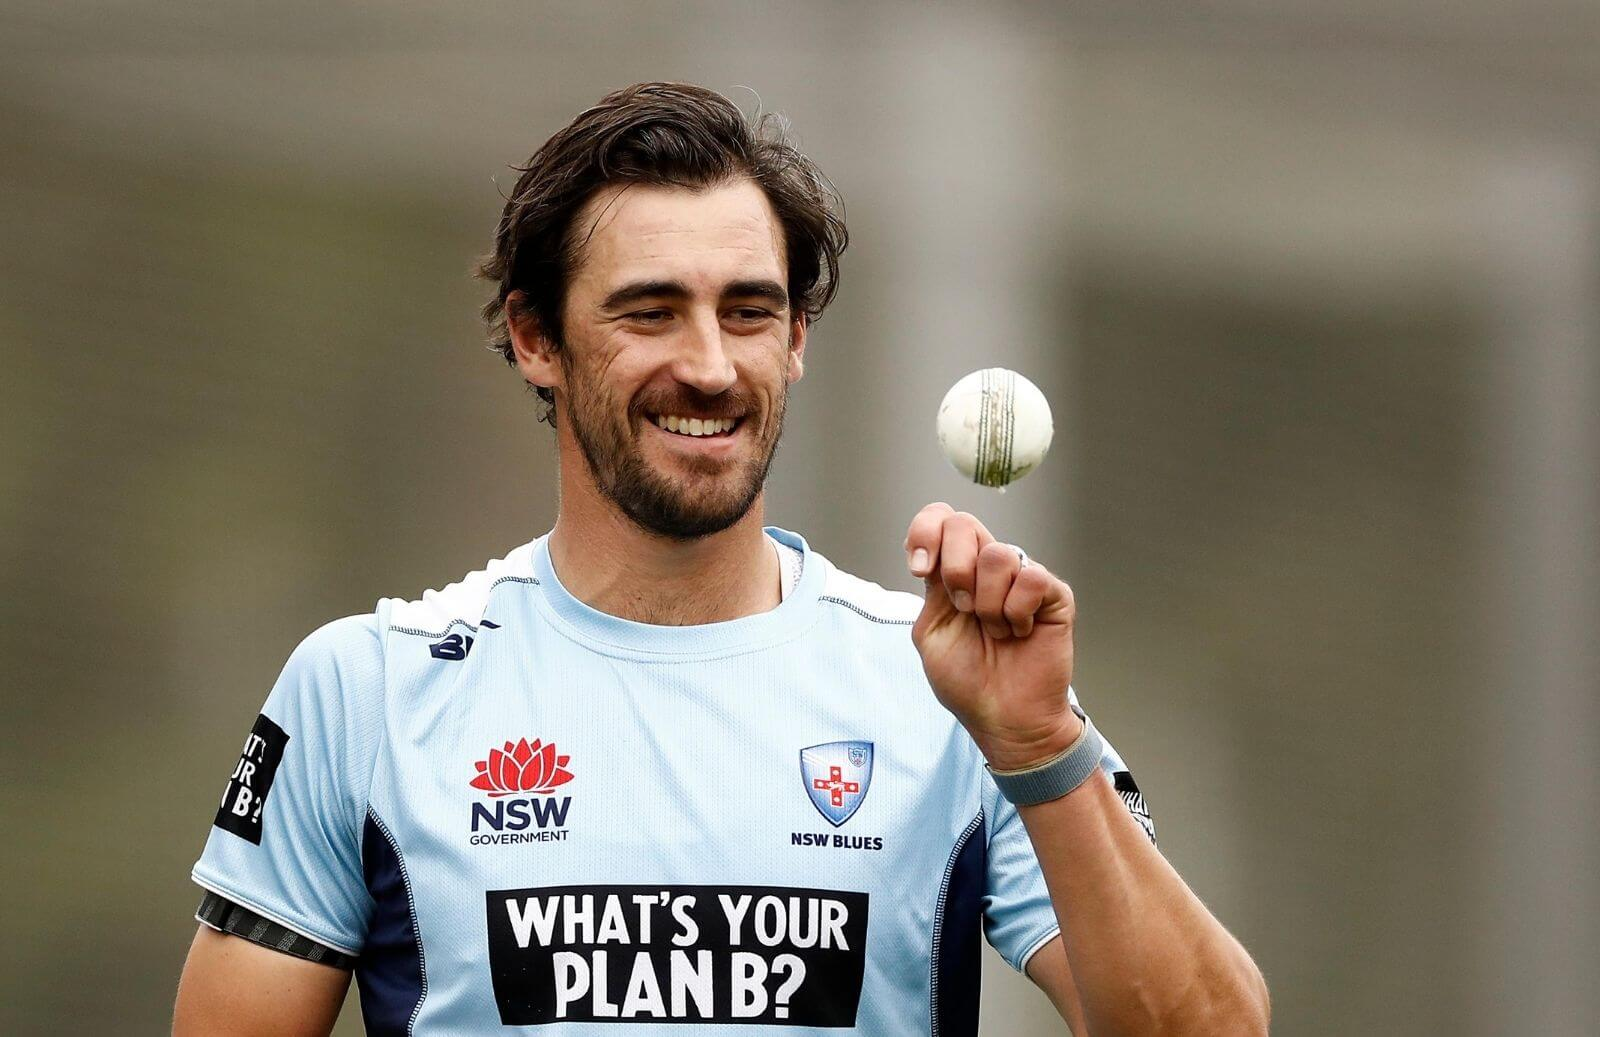 Watch: Mitchell Starc Strikes For Australia On World-Class Delivery, Prithvi Shaw Departs For Duck